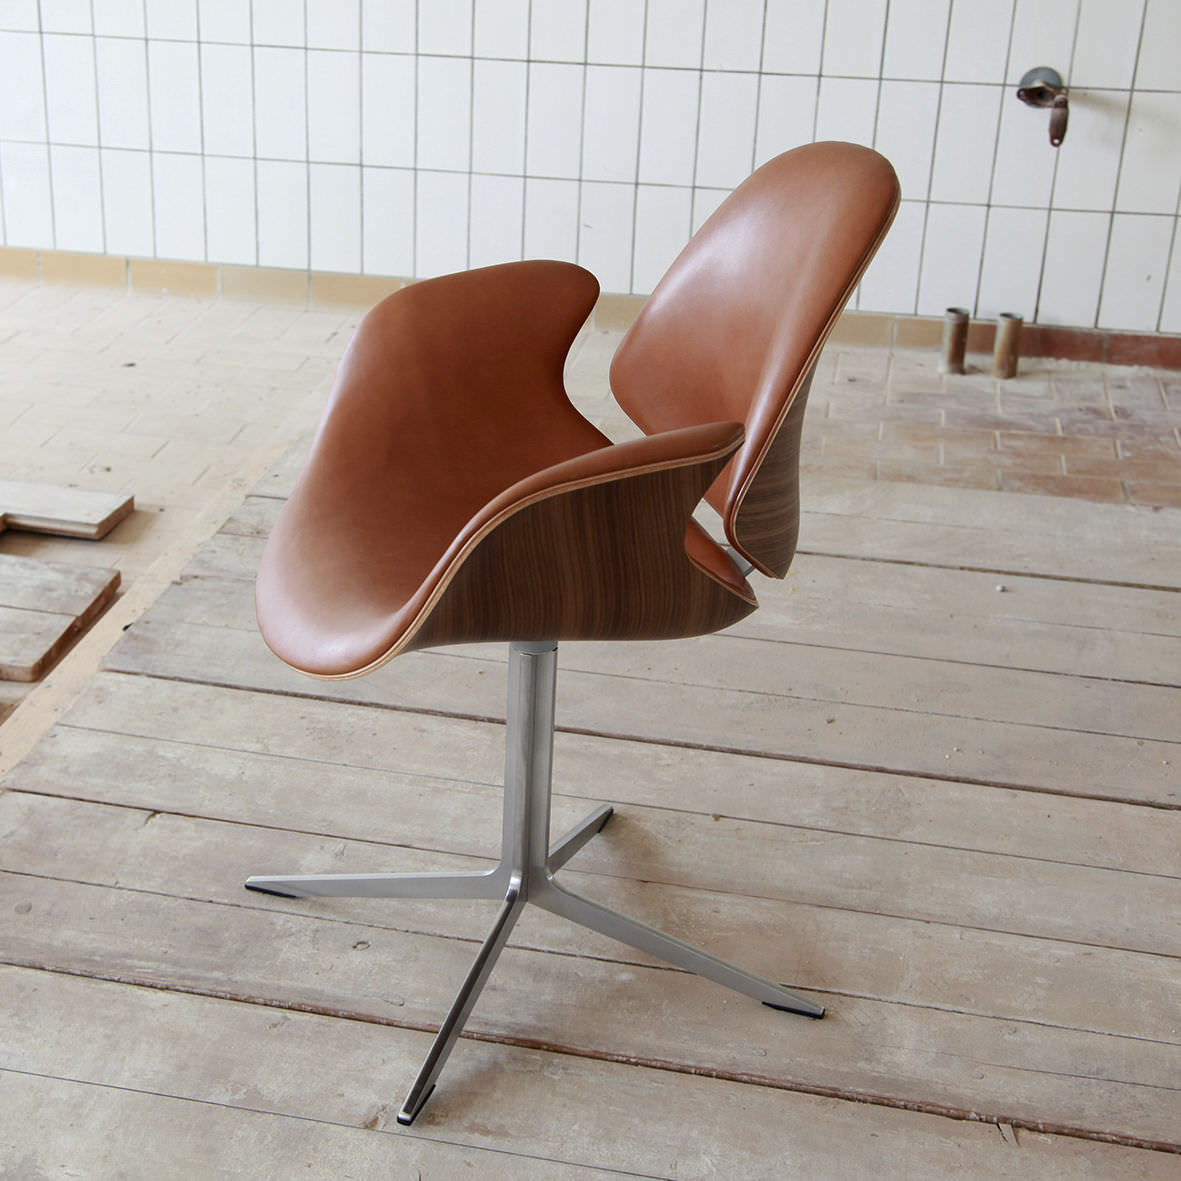 Magnificent Scandinavian Design Chair Swivel Upholstered With Ibusinesslaw Wood Chair Design Ideas Ibusinesslaworg